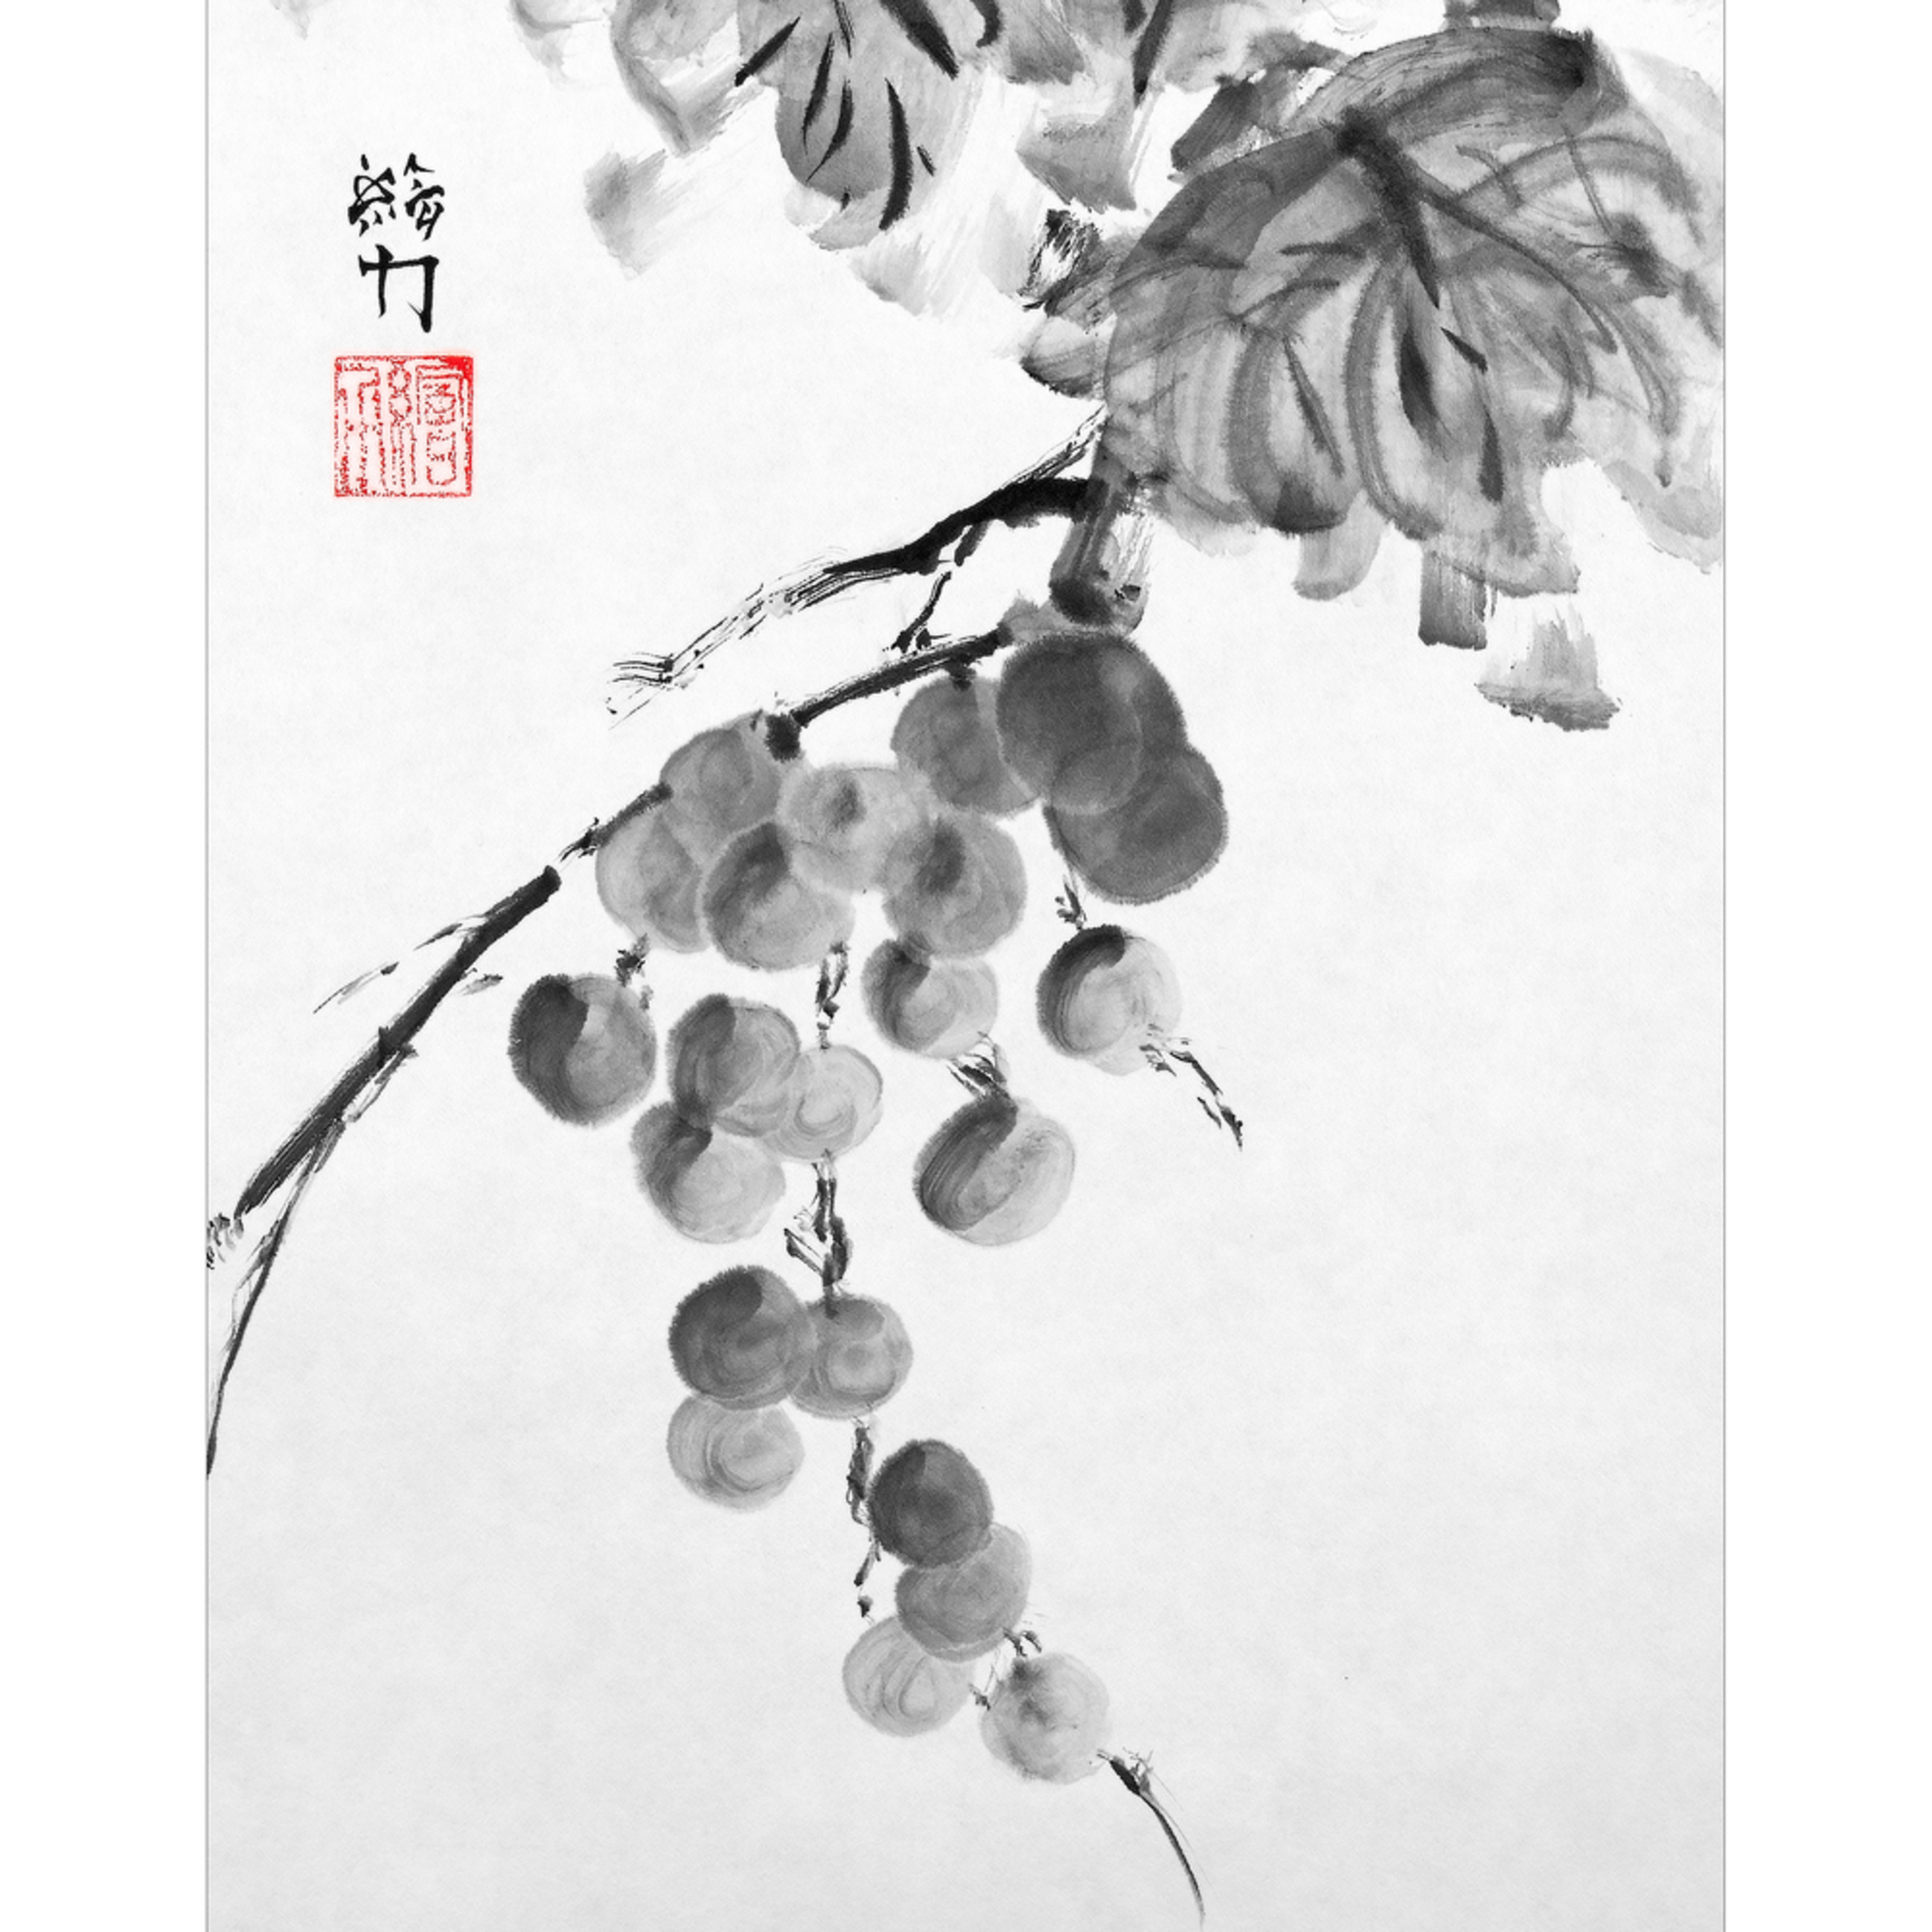 Hombretheartist sumie grapes 2 forprint 111219 lqprzd